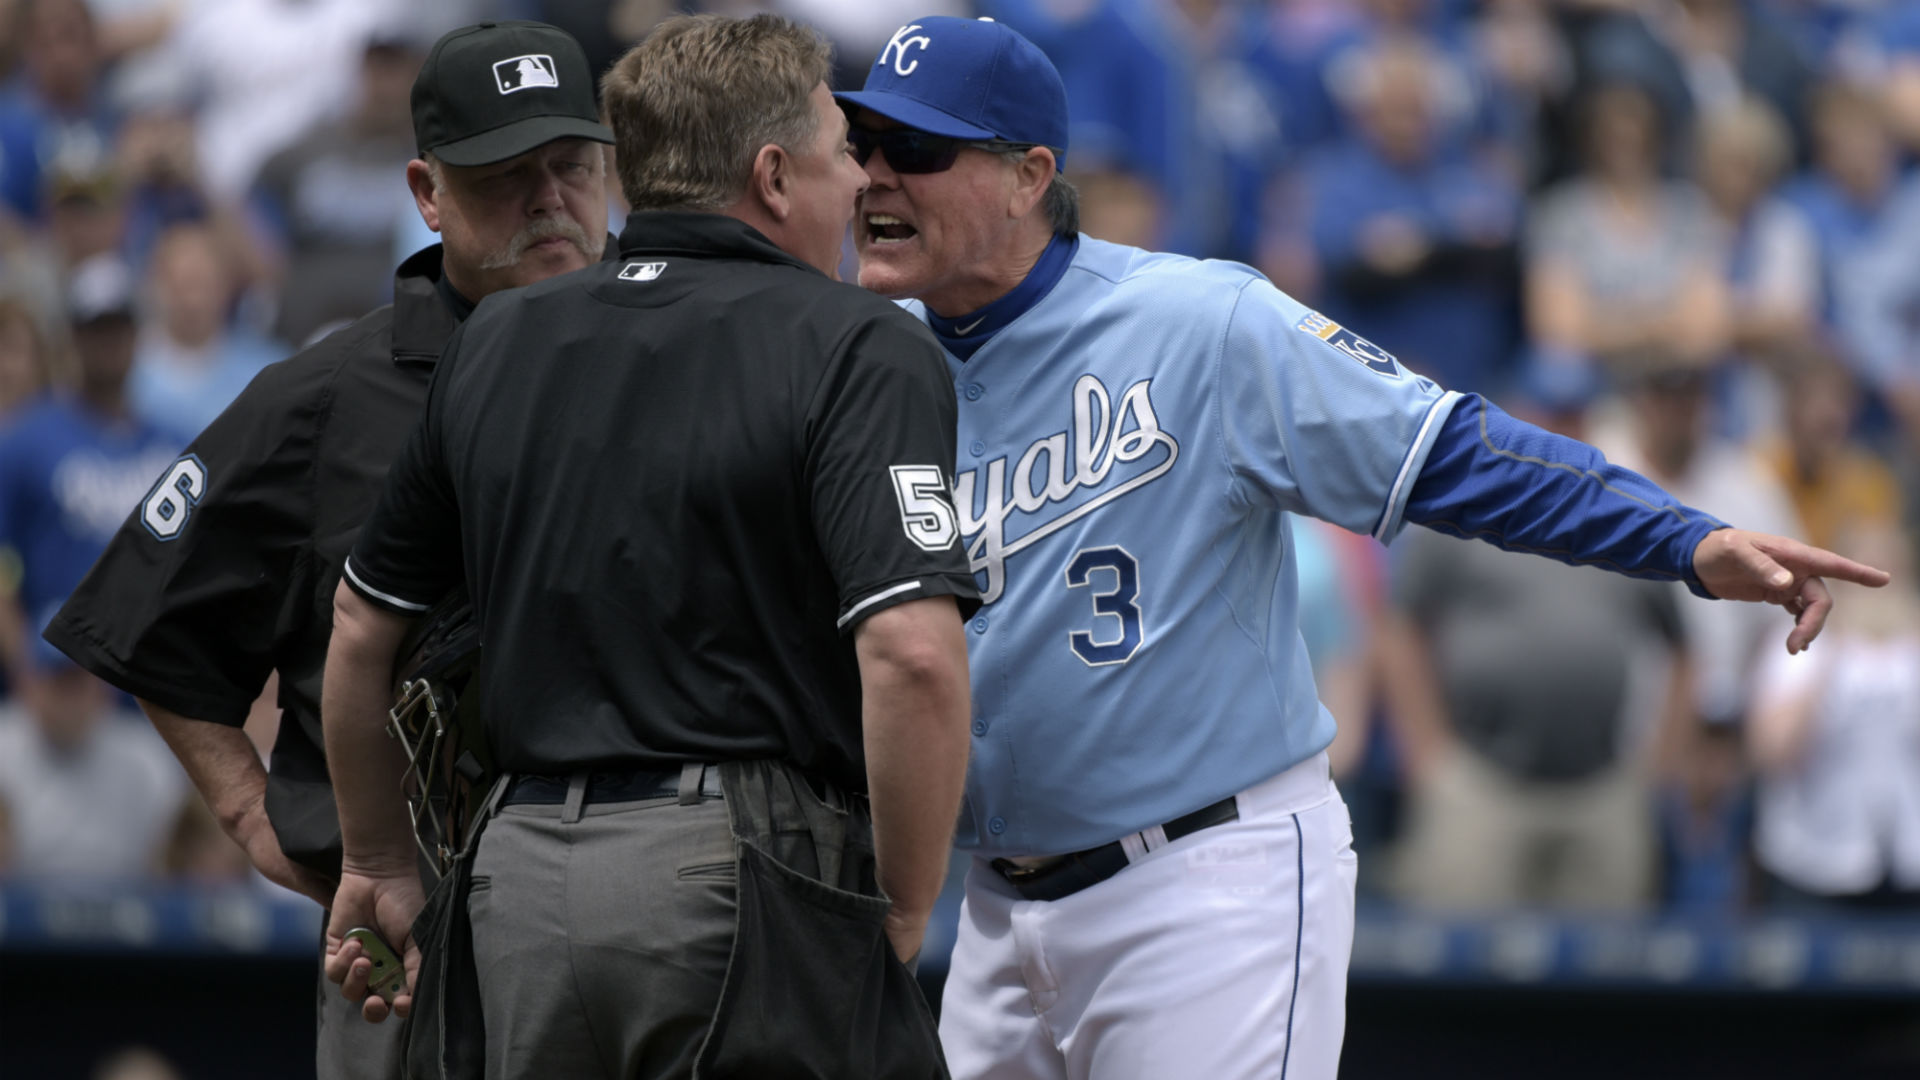 Ned Yost ejected in latest Royals-A's flare-up